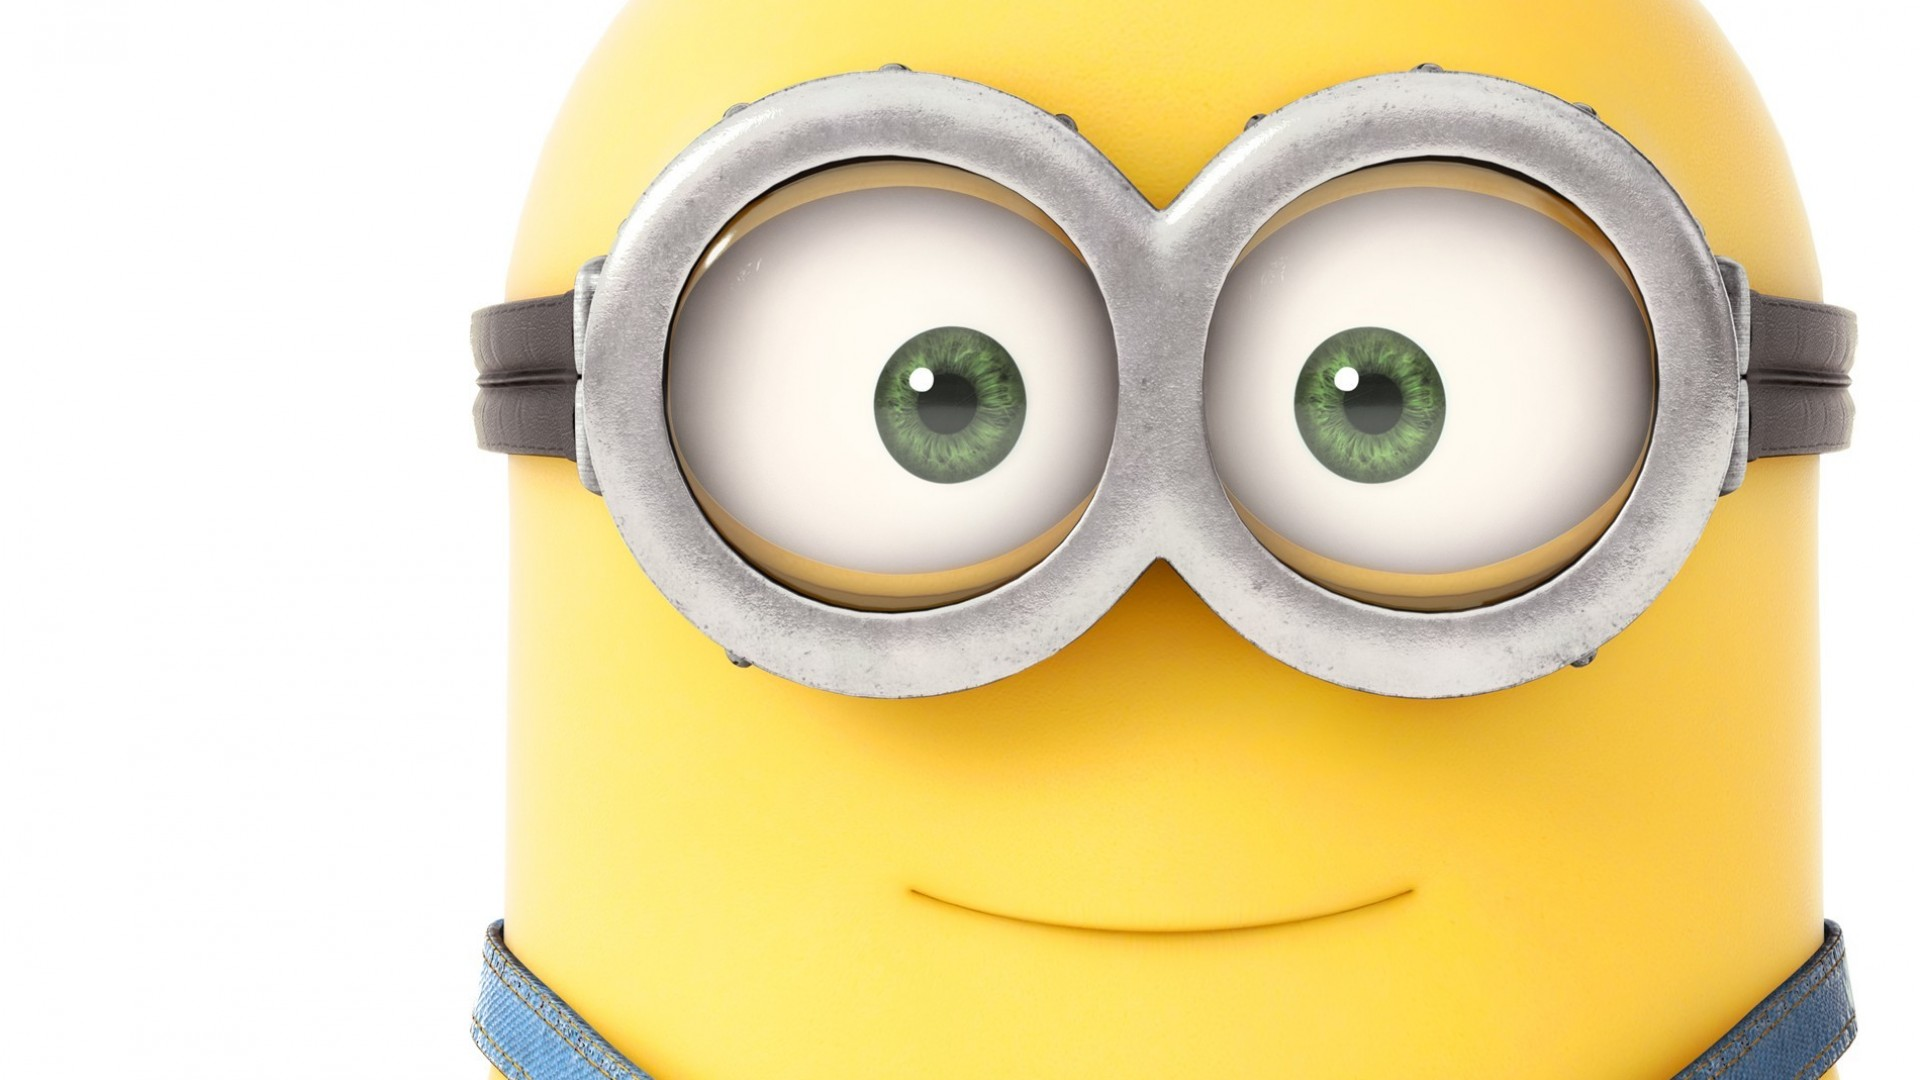 Minion Free Wallpaper